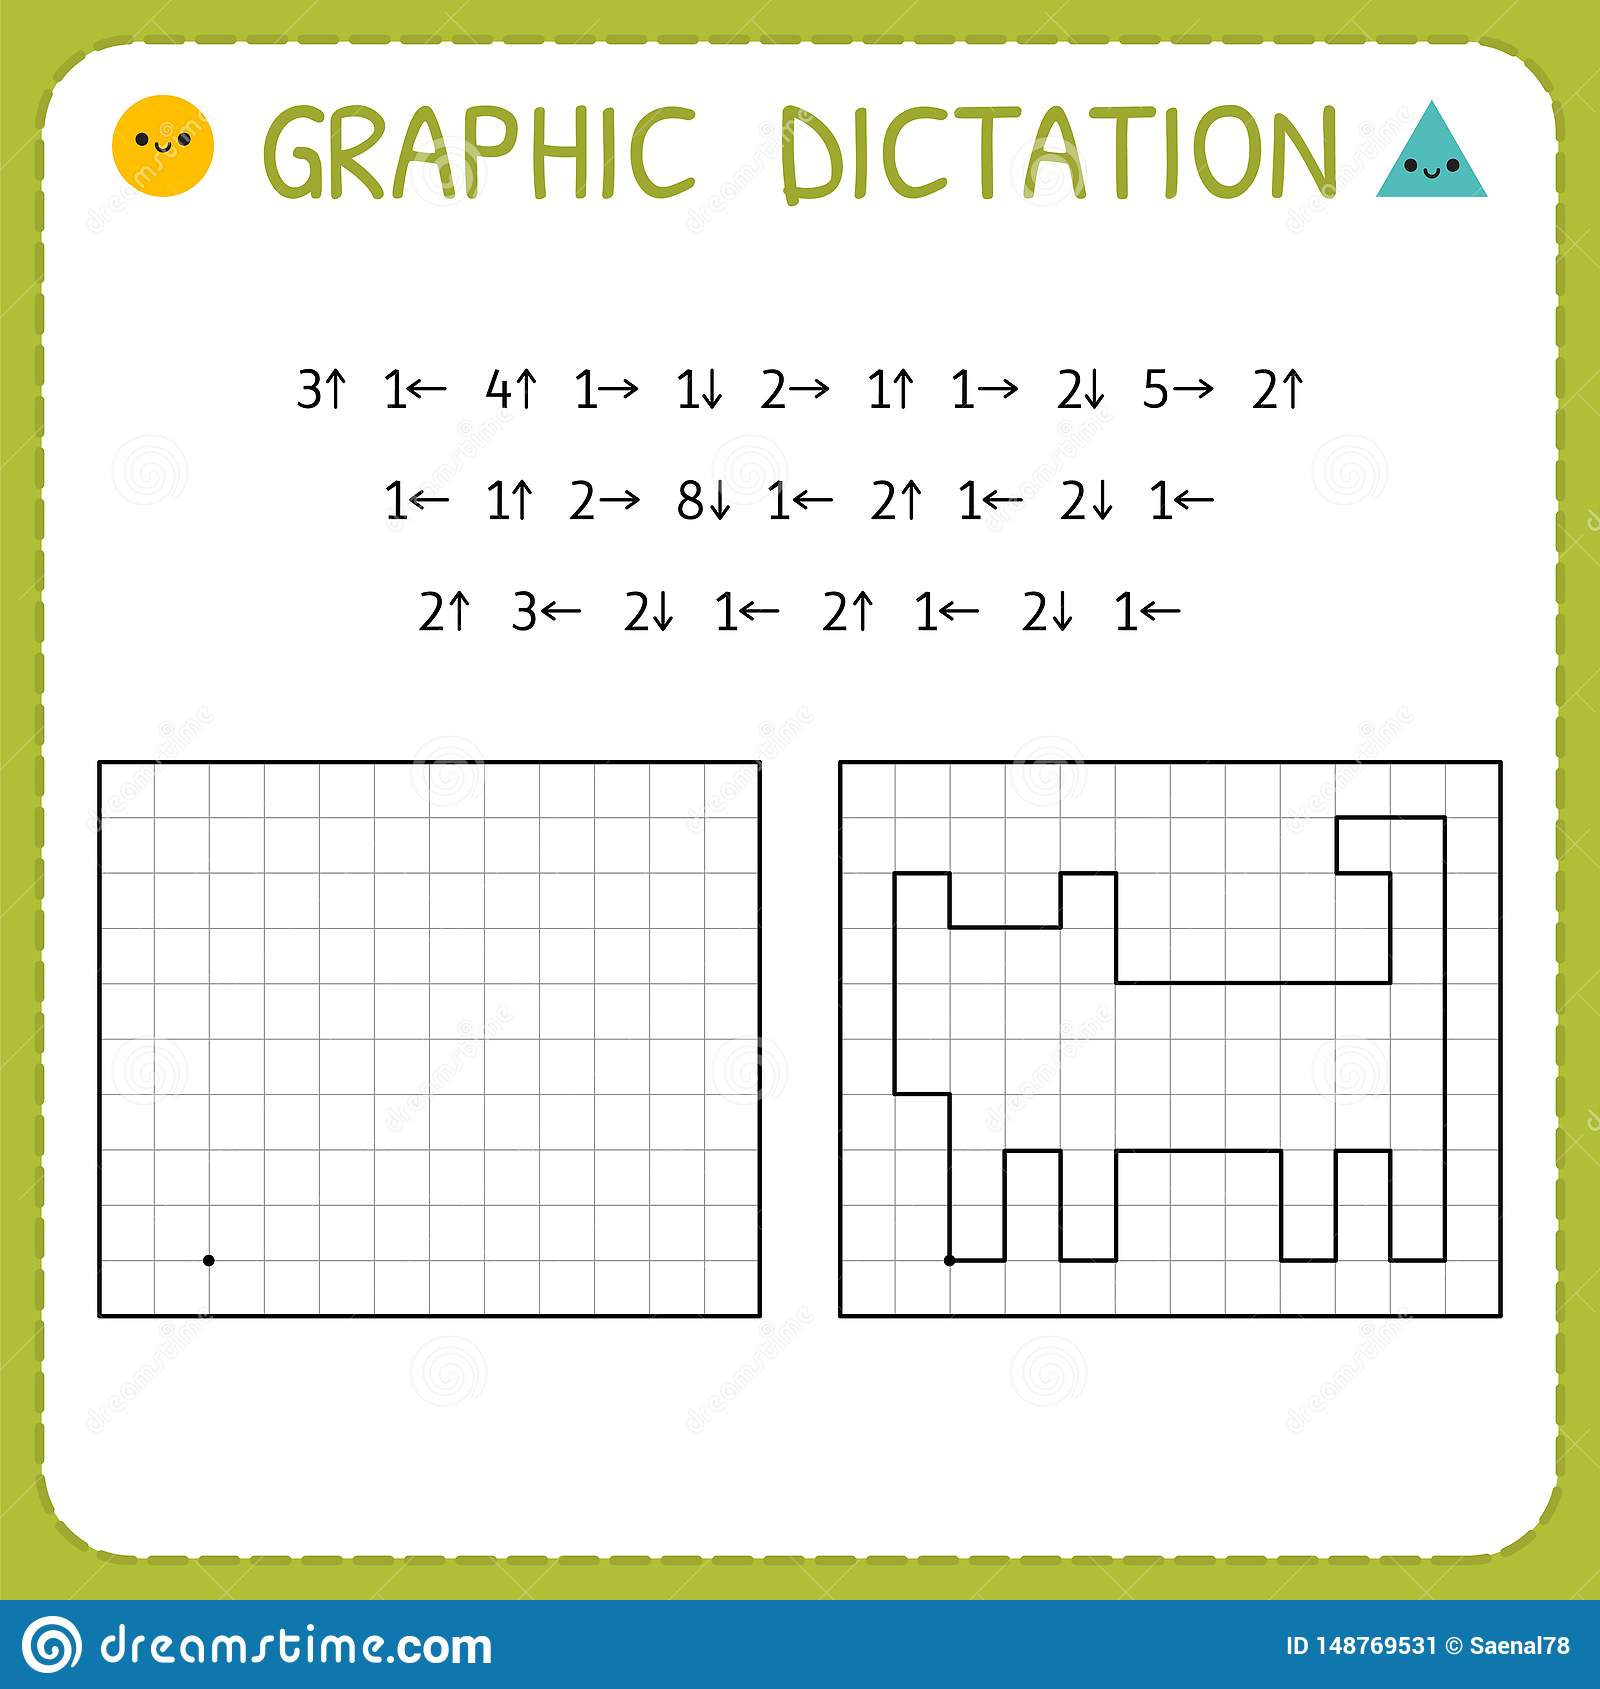 Graphic Dictation Cat Kindergarten Educational Game For